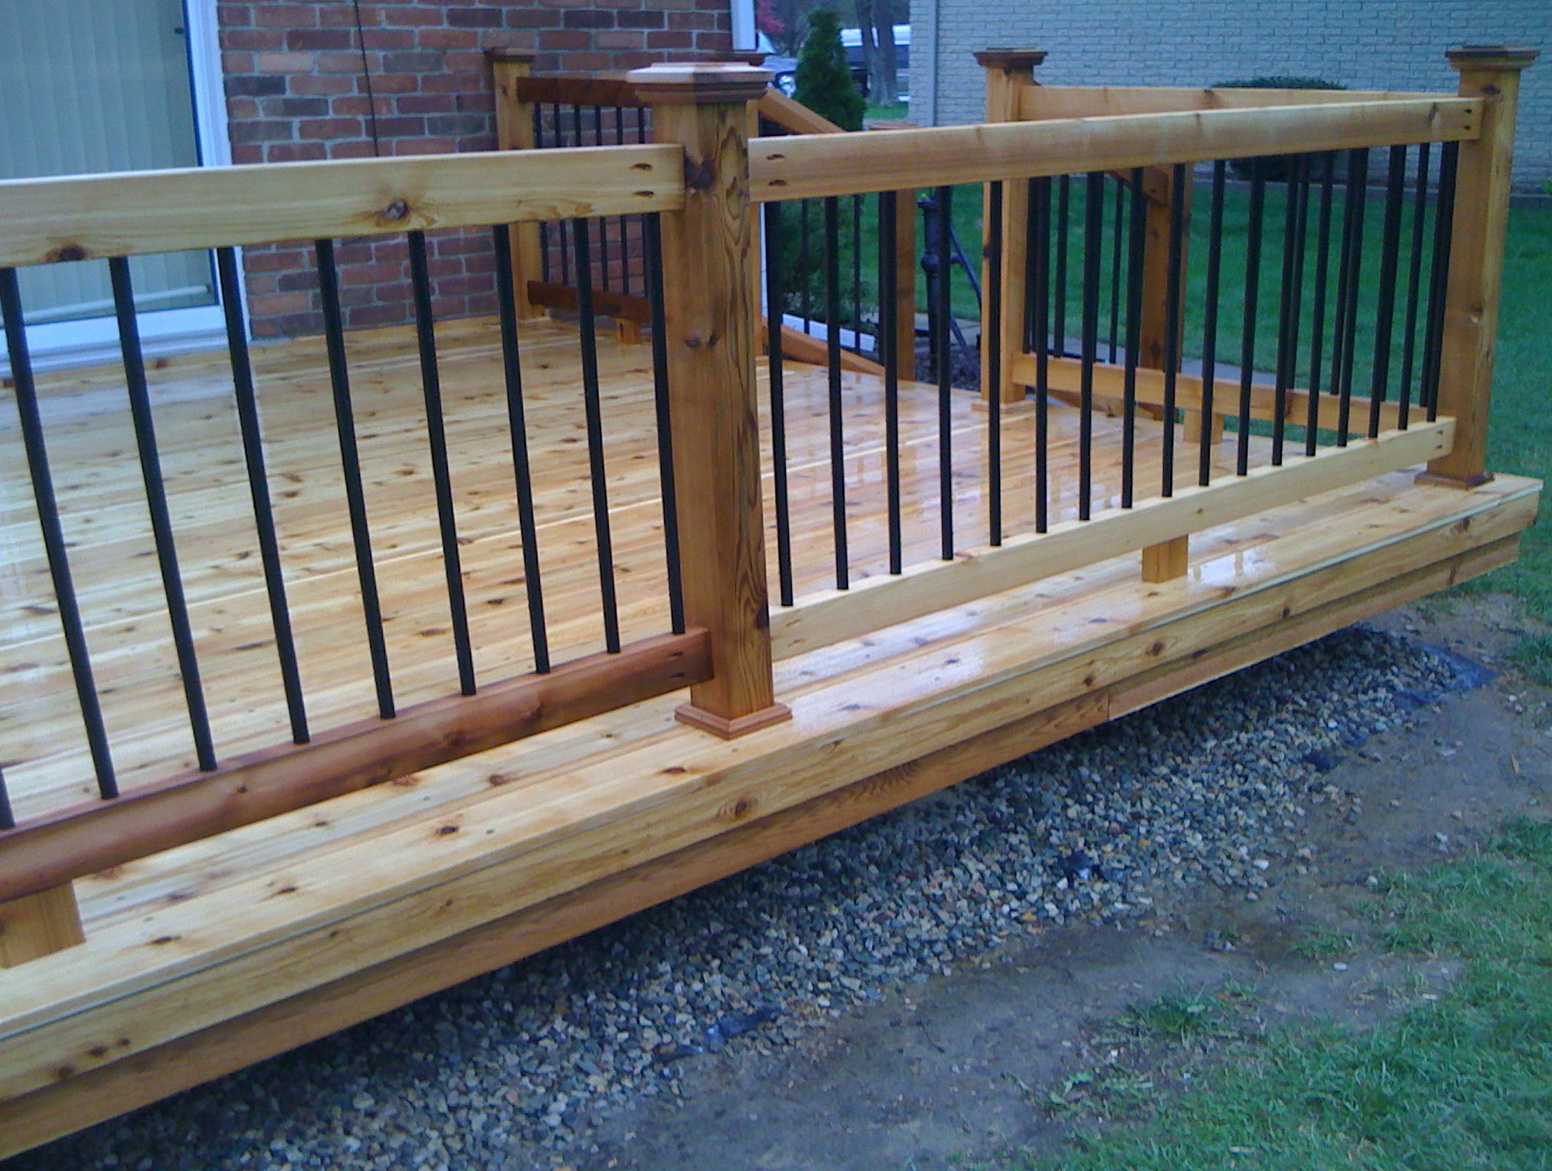 Wood Deck Railing With Metal Balusters | Home Design Ideas